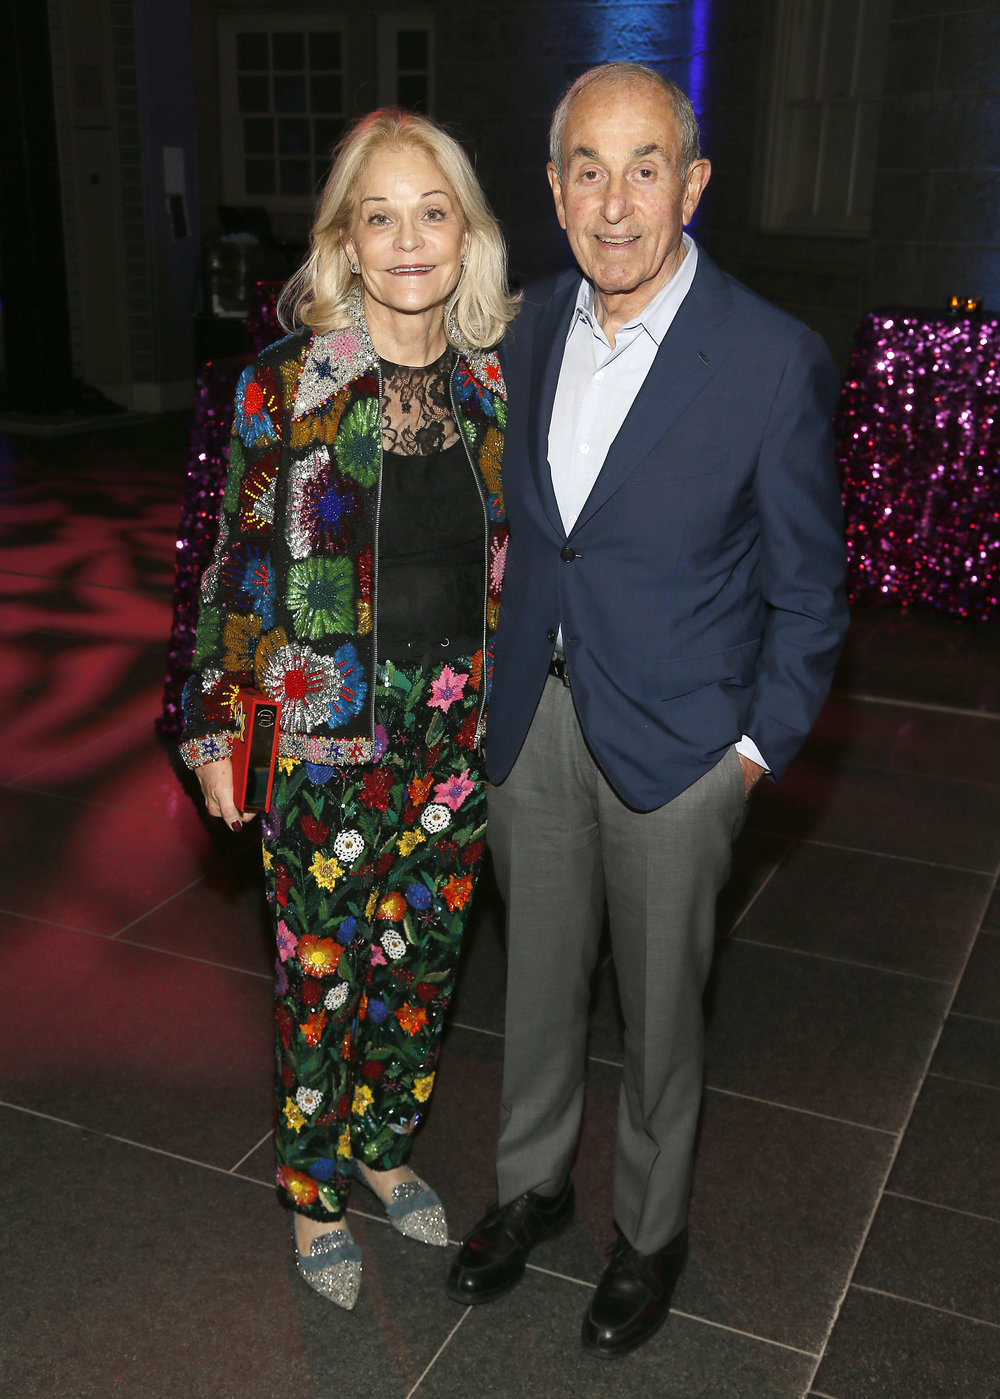 """Left to right: Catherine Podell and Michael Podell attend the """"Face Forward Artist Party"""" at the Smithsonian's National Portrait Gallery on Saturday, November 10, 2018, in Washington.  ©Photo by Paul Morigi/AP Images for National Portrait Gallery)"""